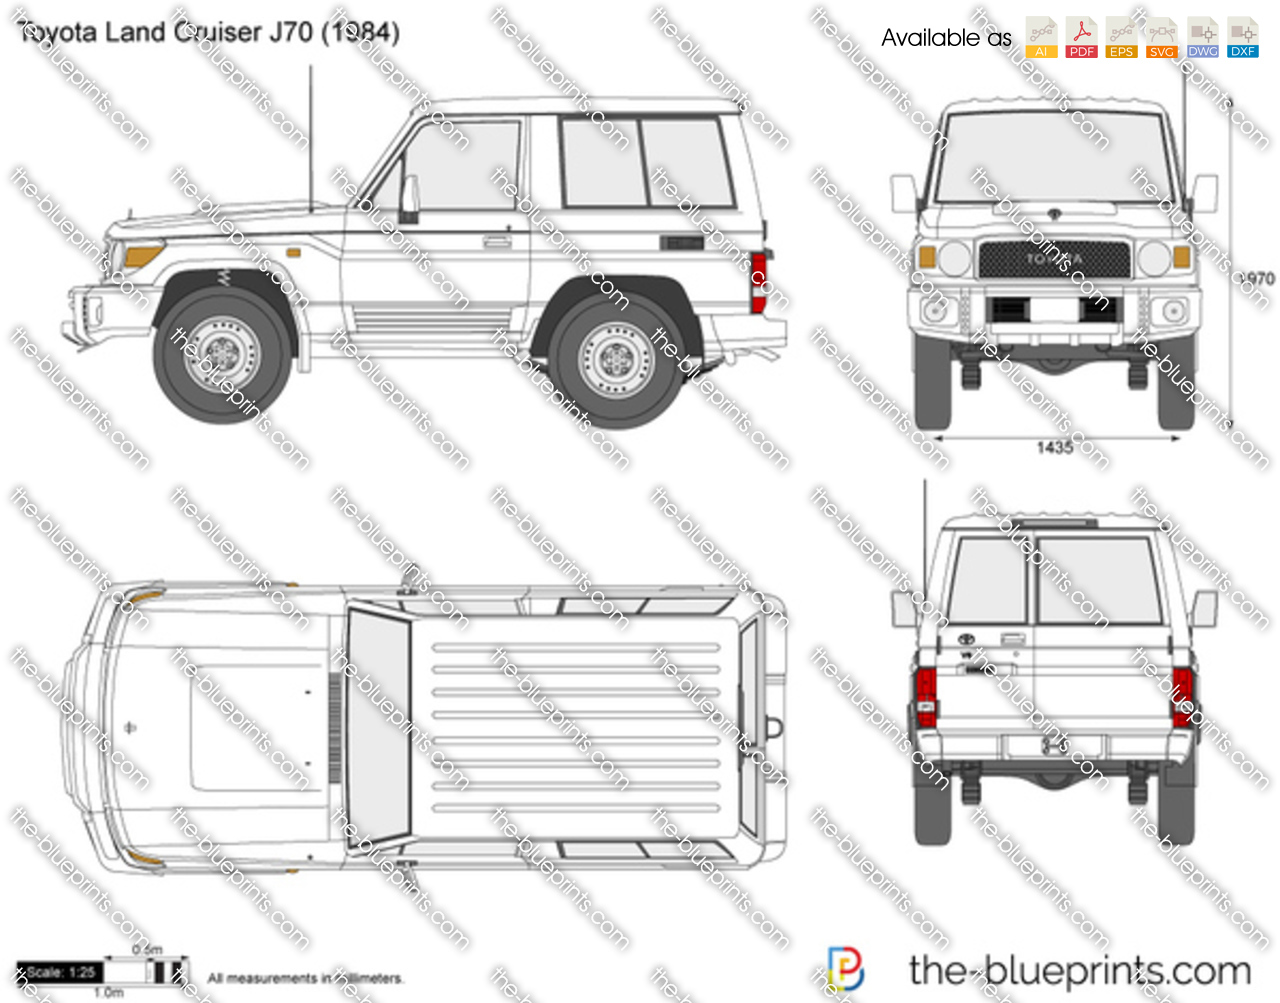 toyota land cruiser j70 swb vector drawing